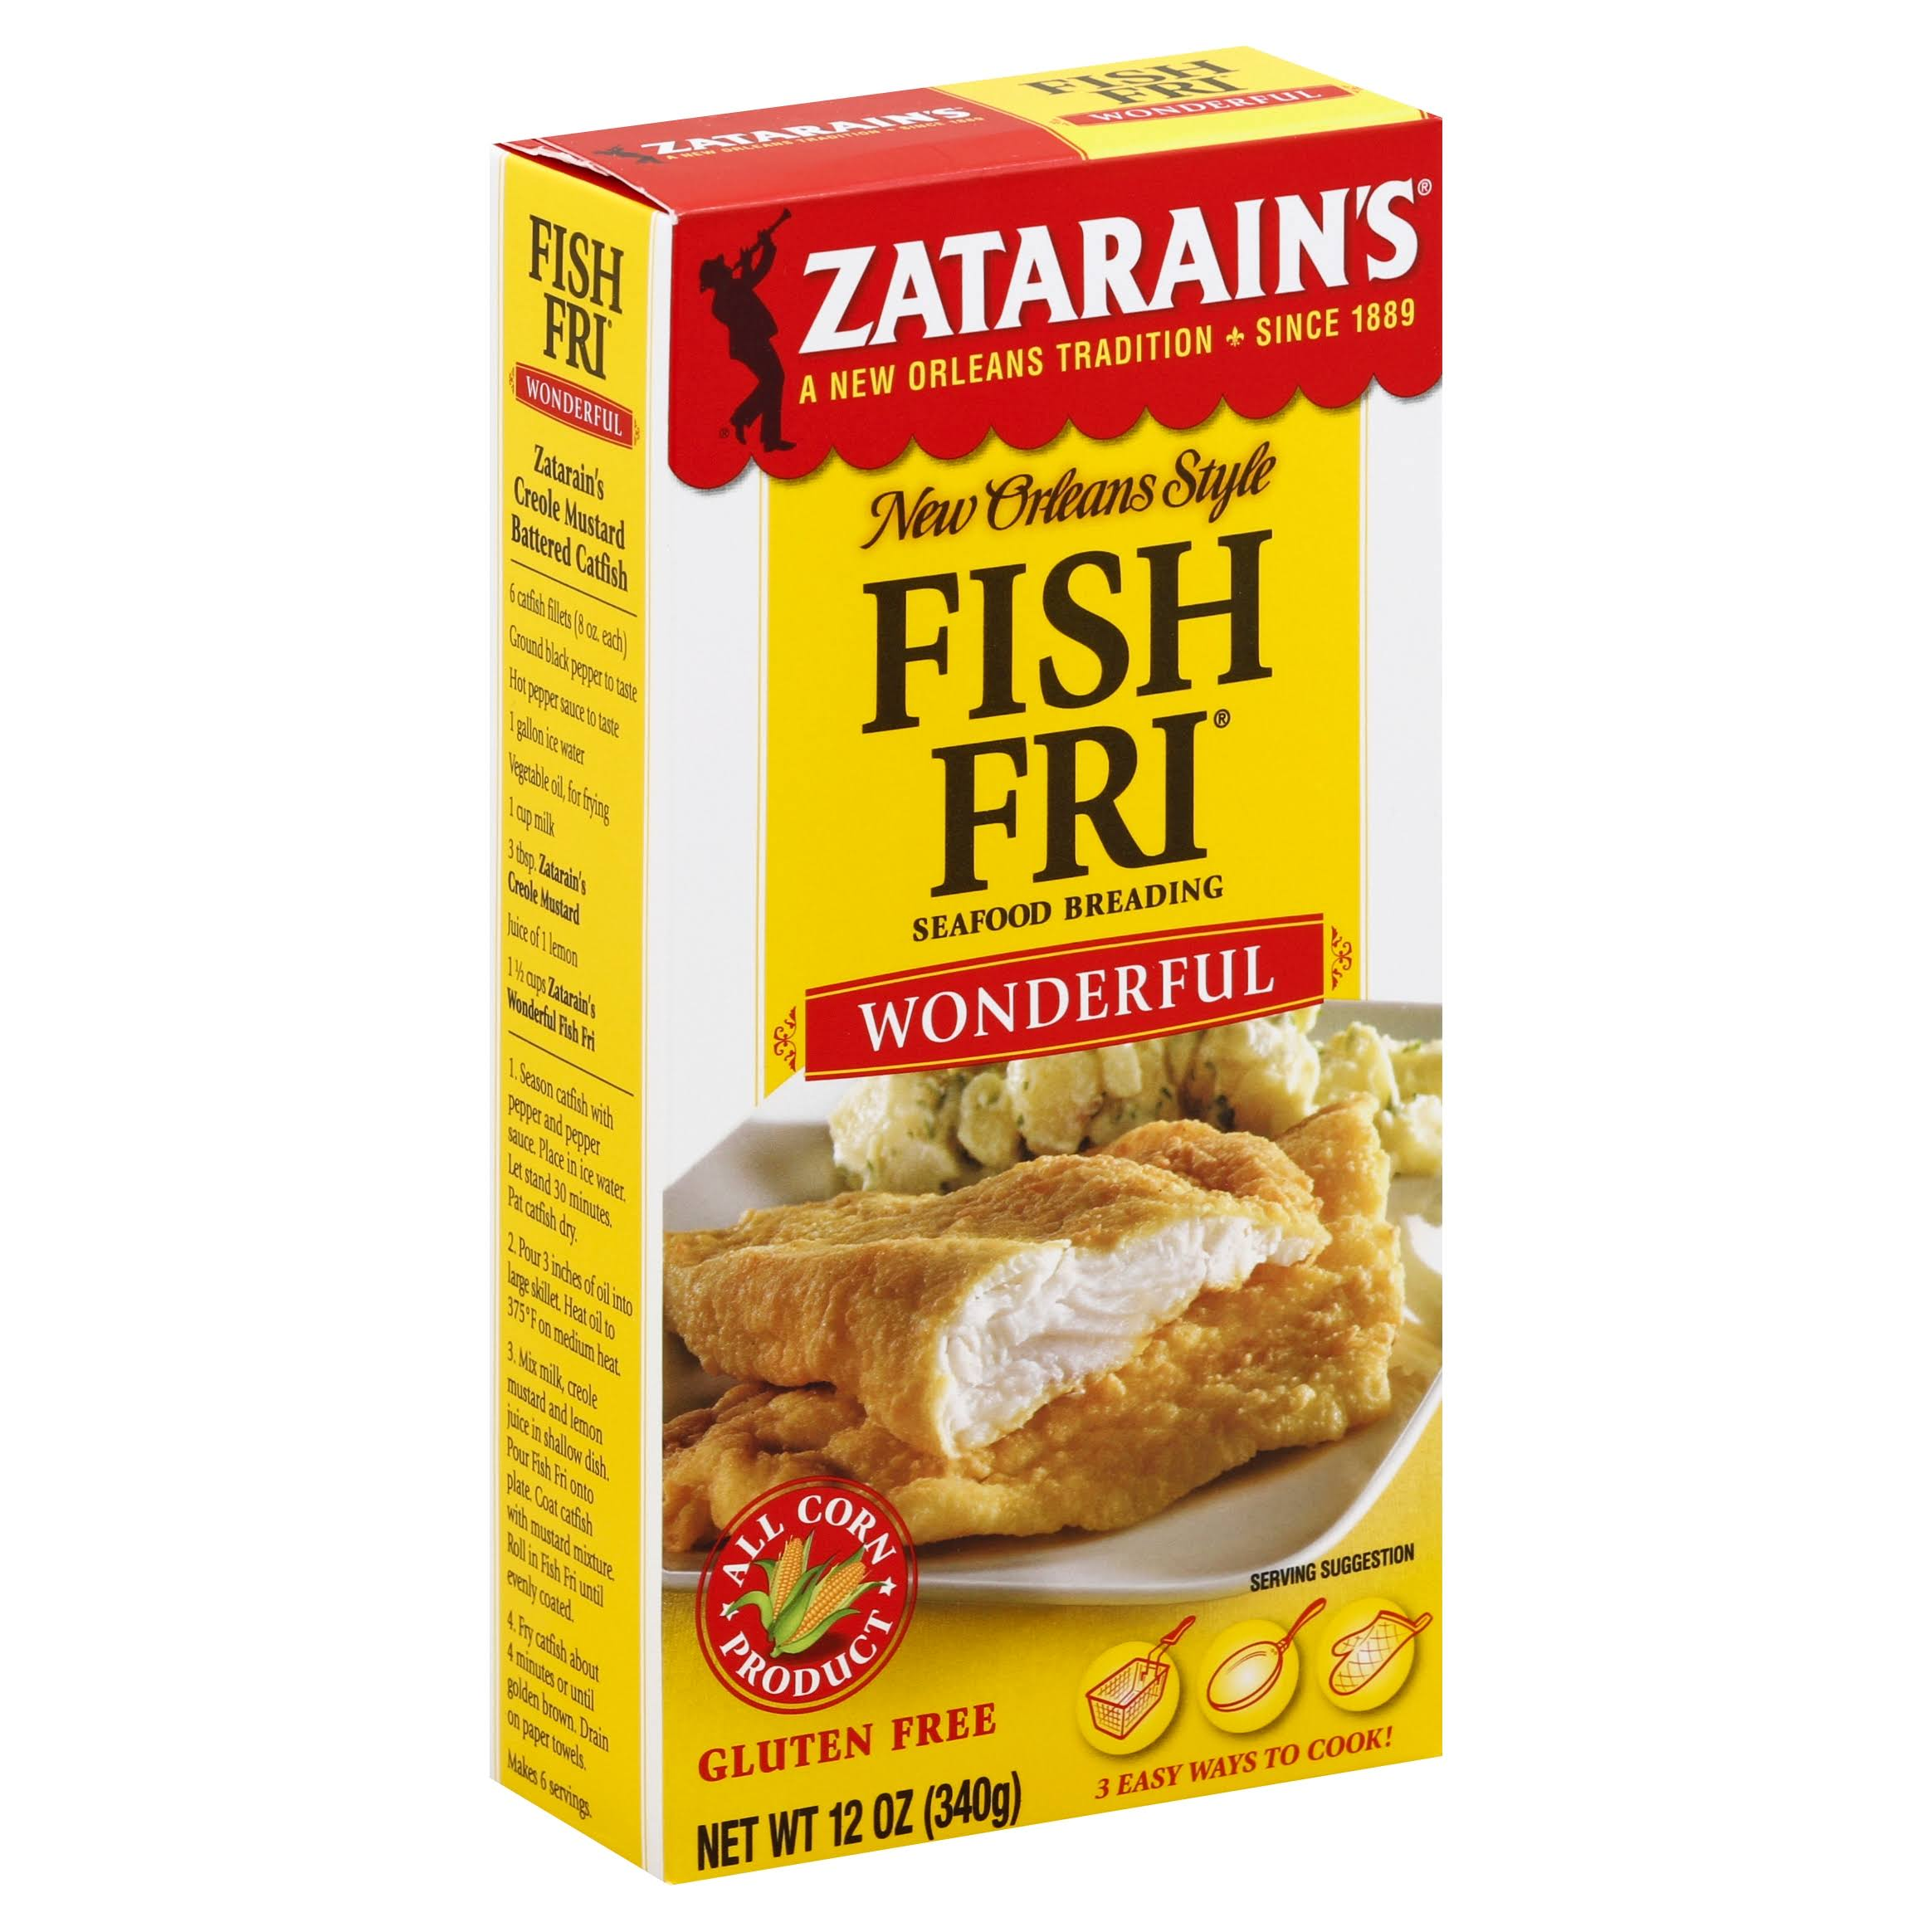 Zatarain's New Orleans Style Fish Fri Wonderful Seafood Breading - 340g